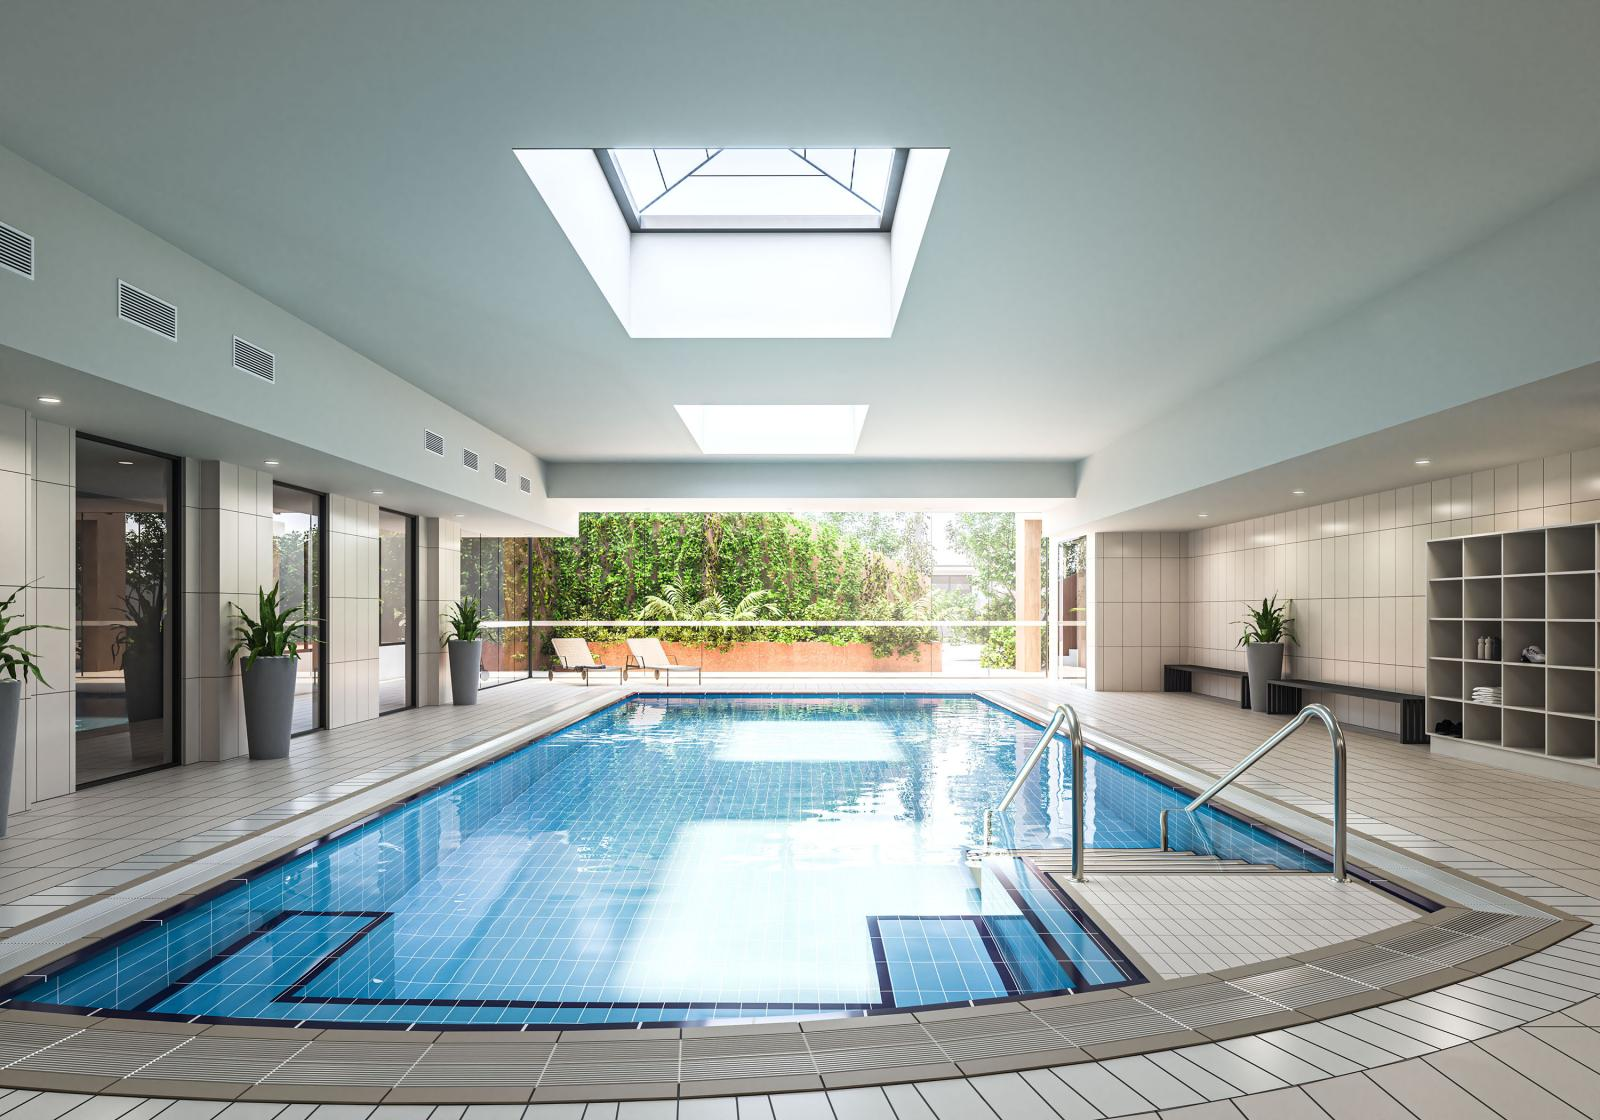 Pool at the Yarra Rossa retirement living project in Canberra